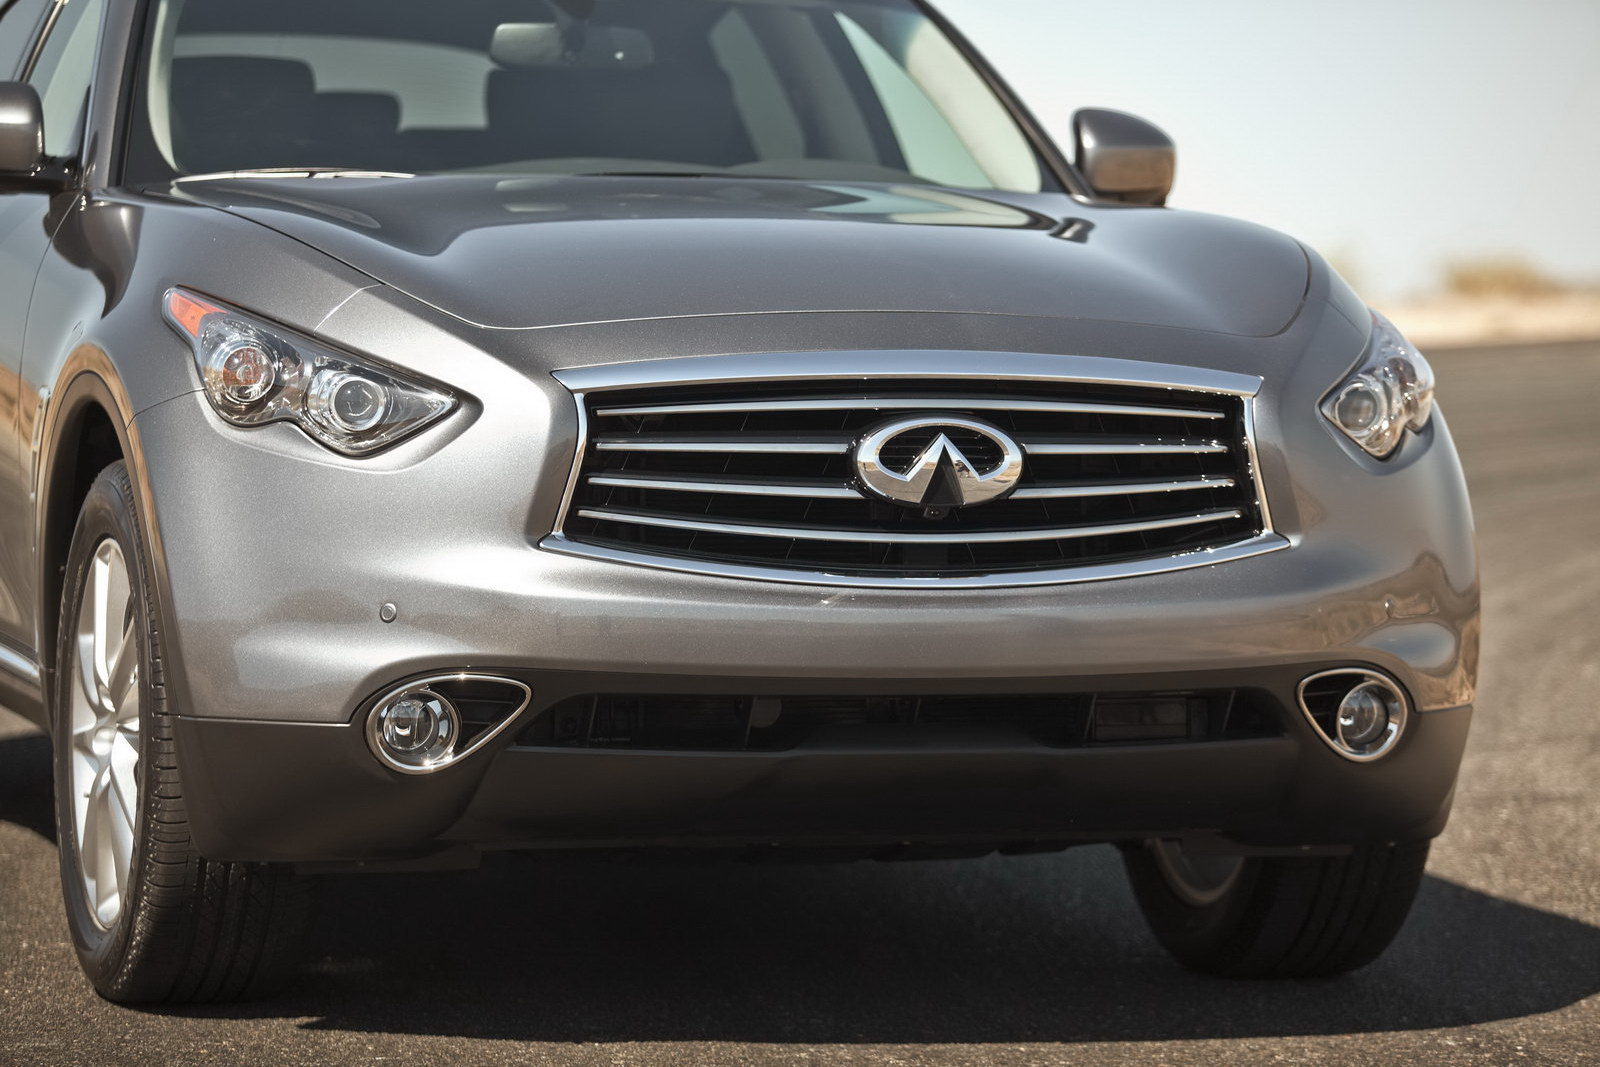 2012 infiniti FX35 6 INFINITI 2012 REVISED FX PRICE REVEALED